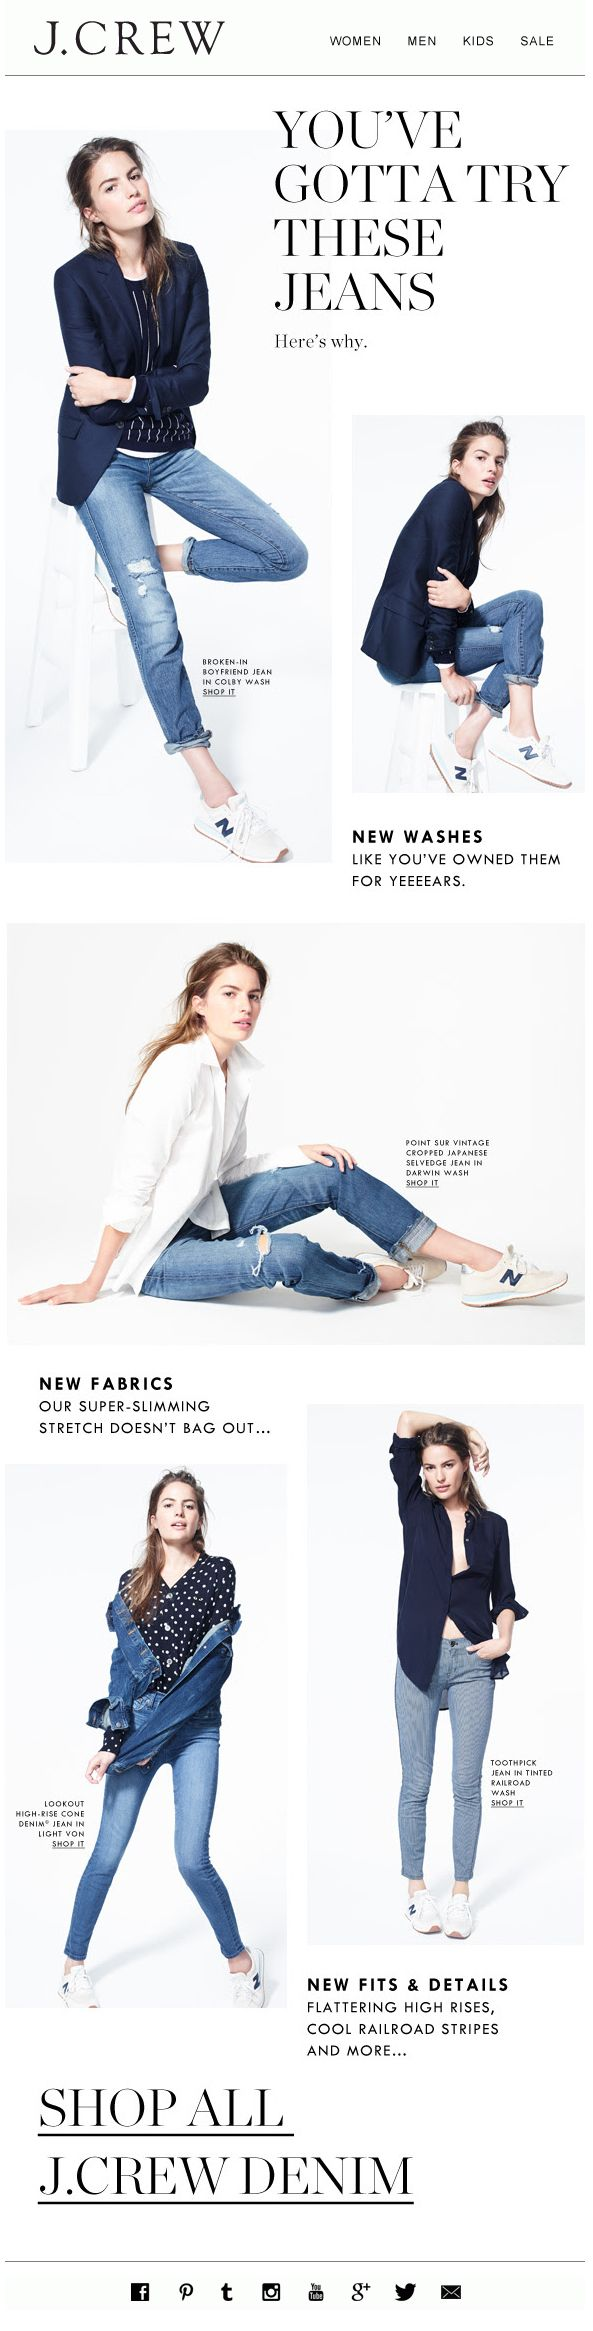 J.CREW : Product Feature